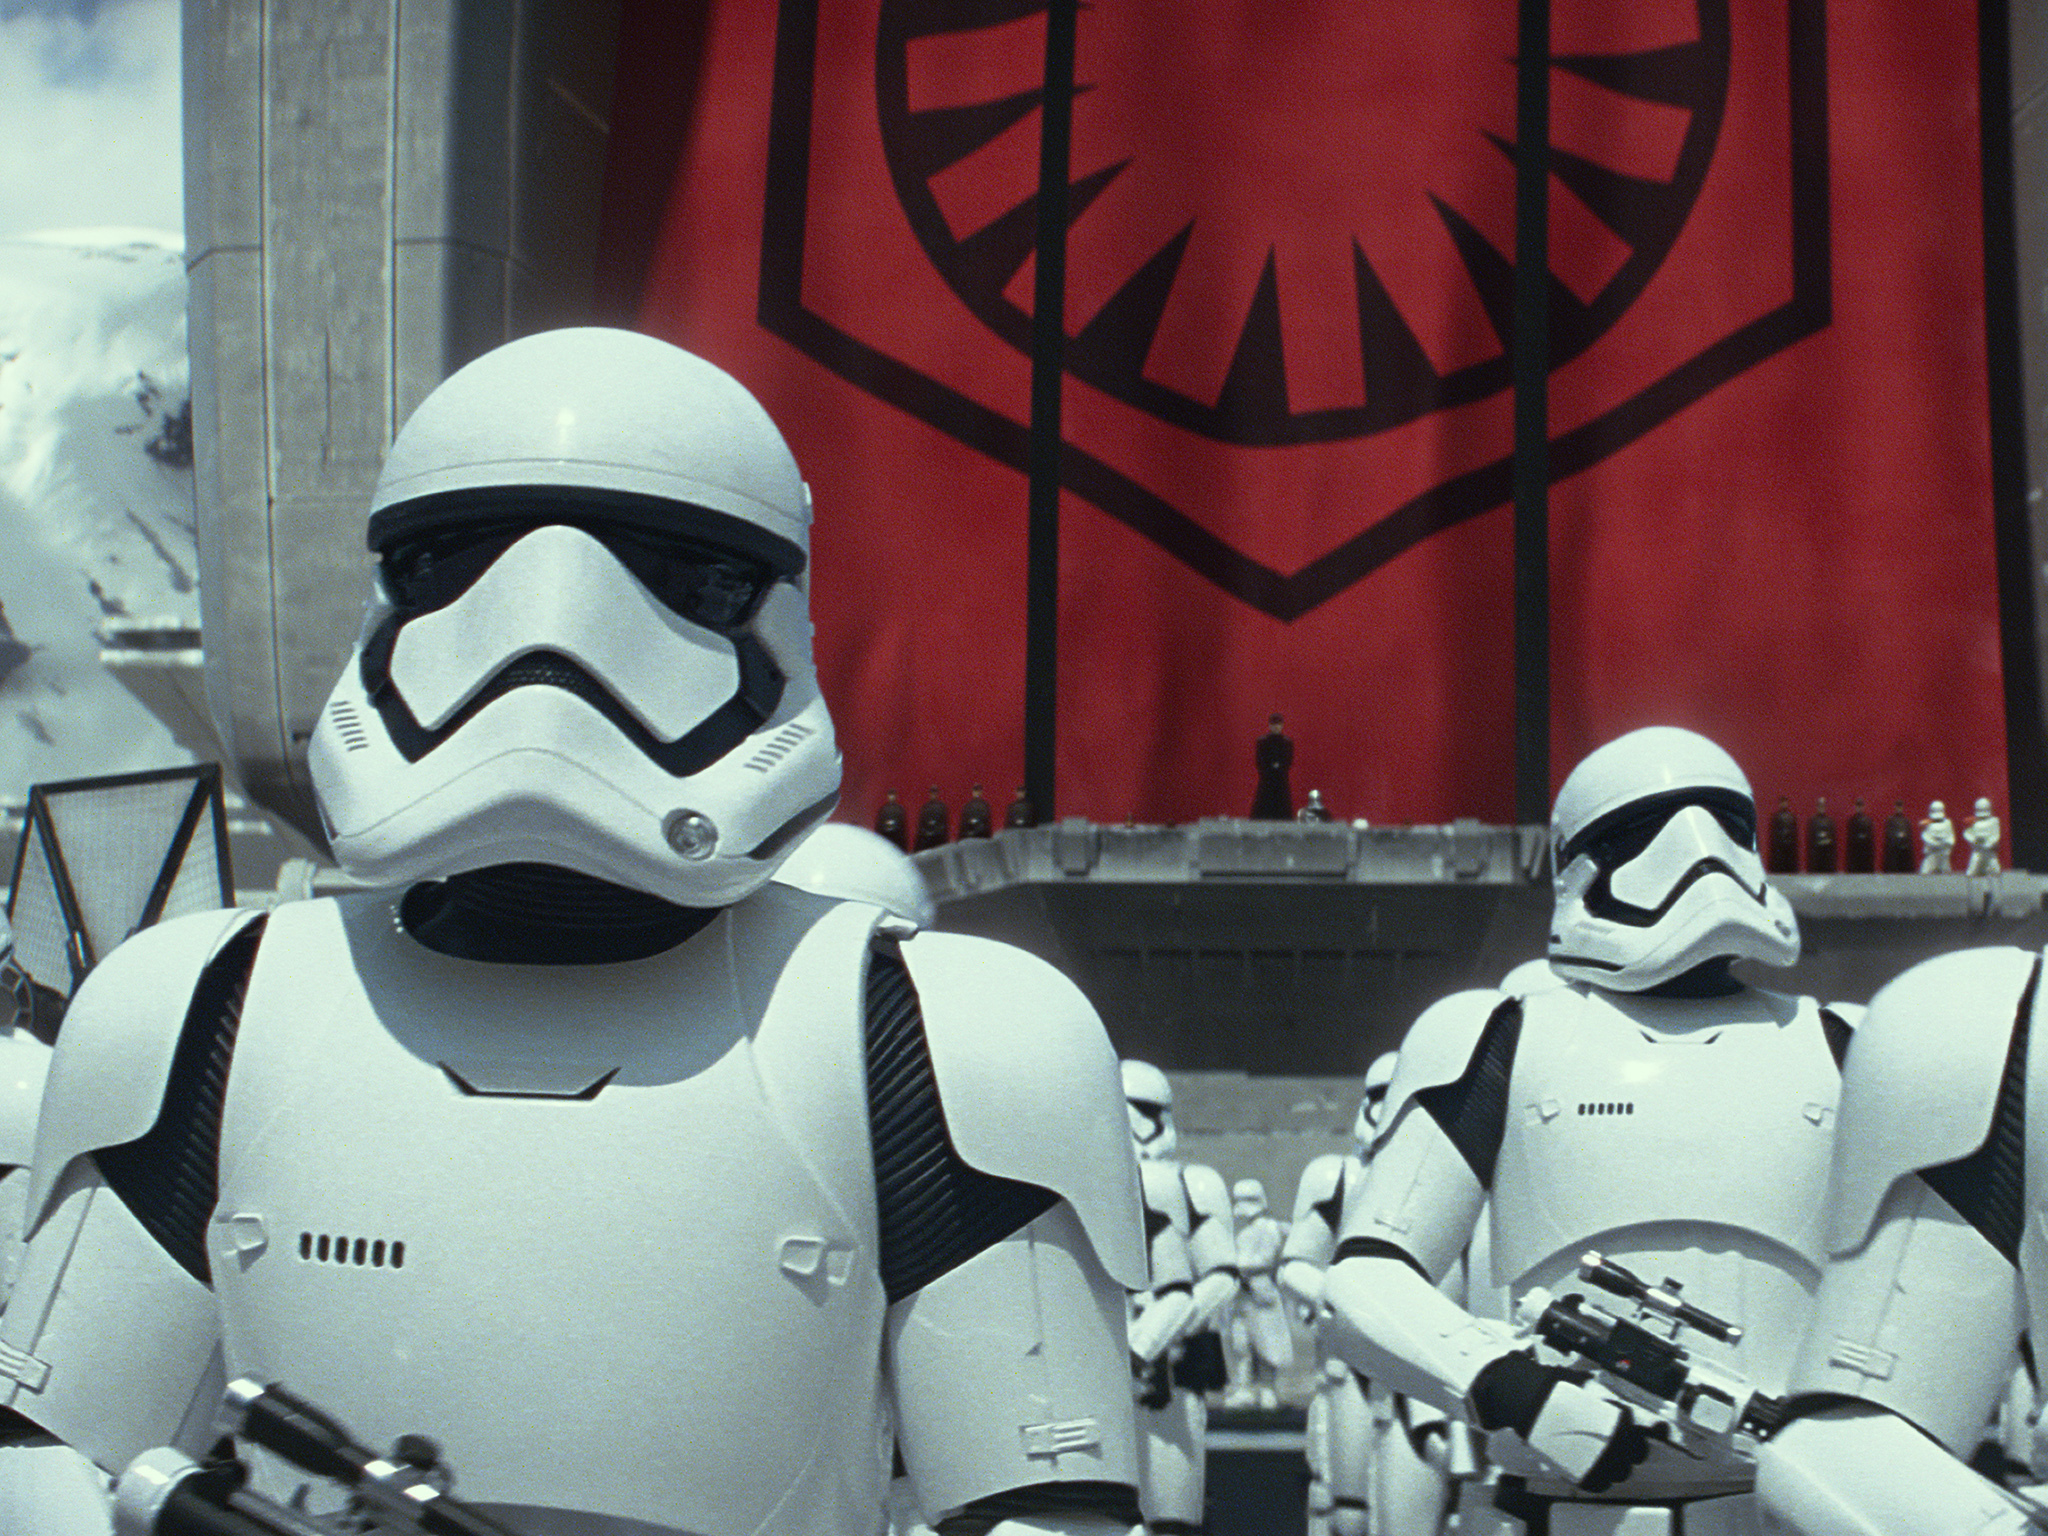 Five things we learned from the new 'Star Wars: The Force Awakens' footage